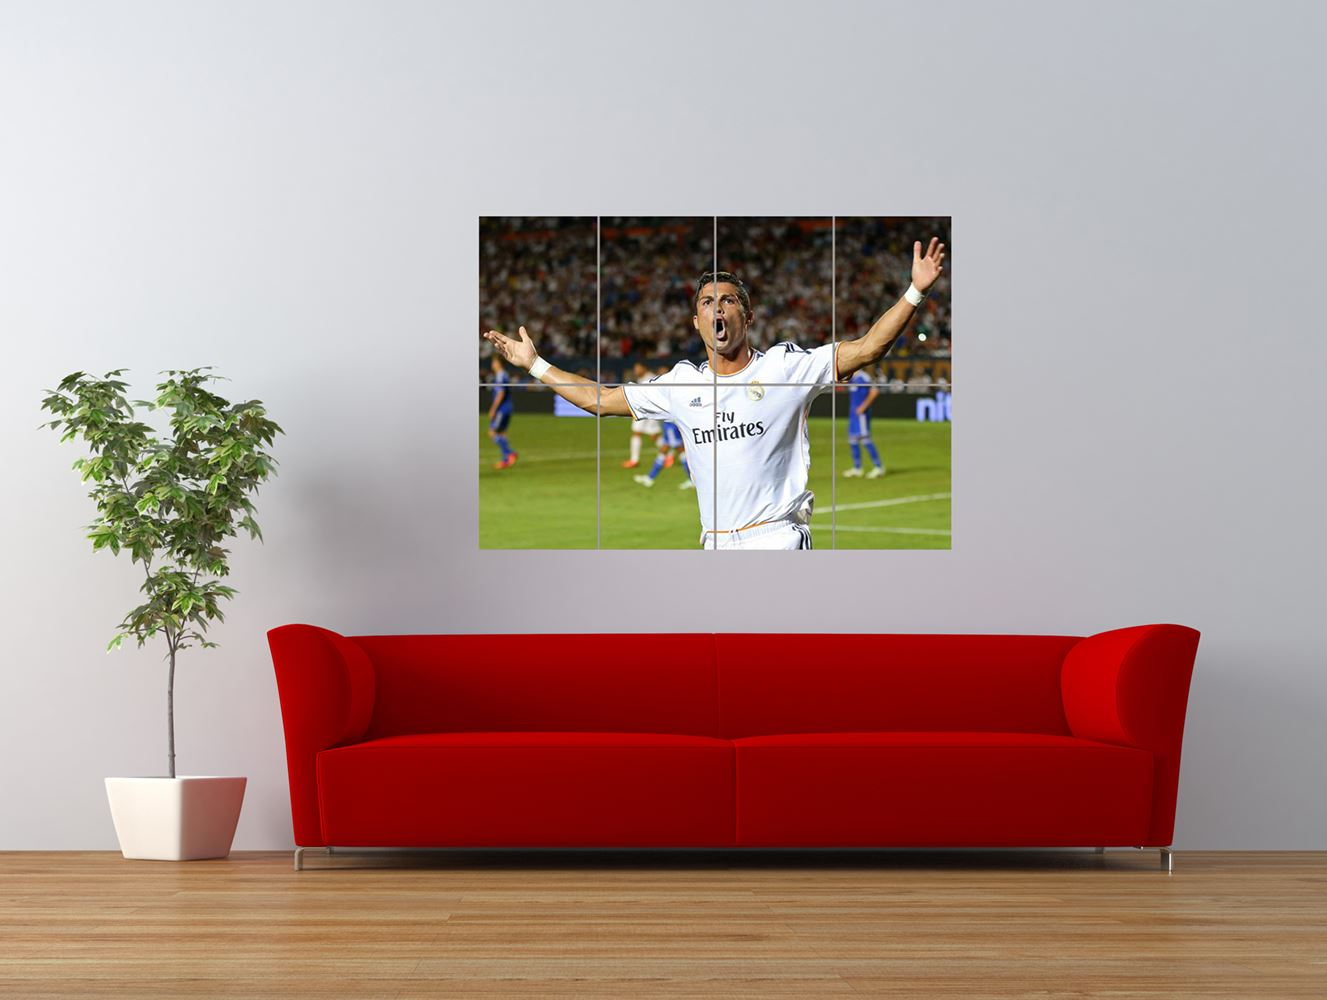 cristiano ronaldo football giant art print panel poster nor0258 ebay. Black Bedroom Furniture Sets. Home Design Ideas